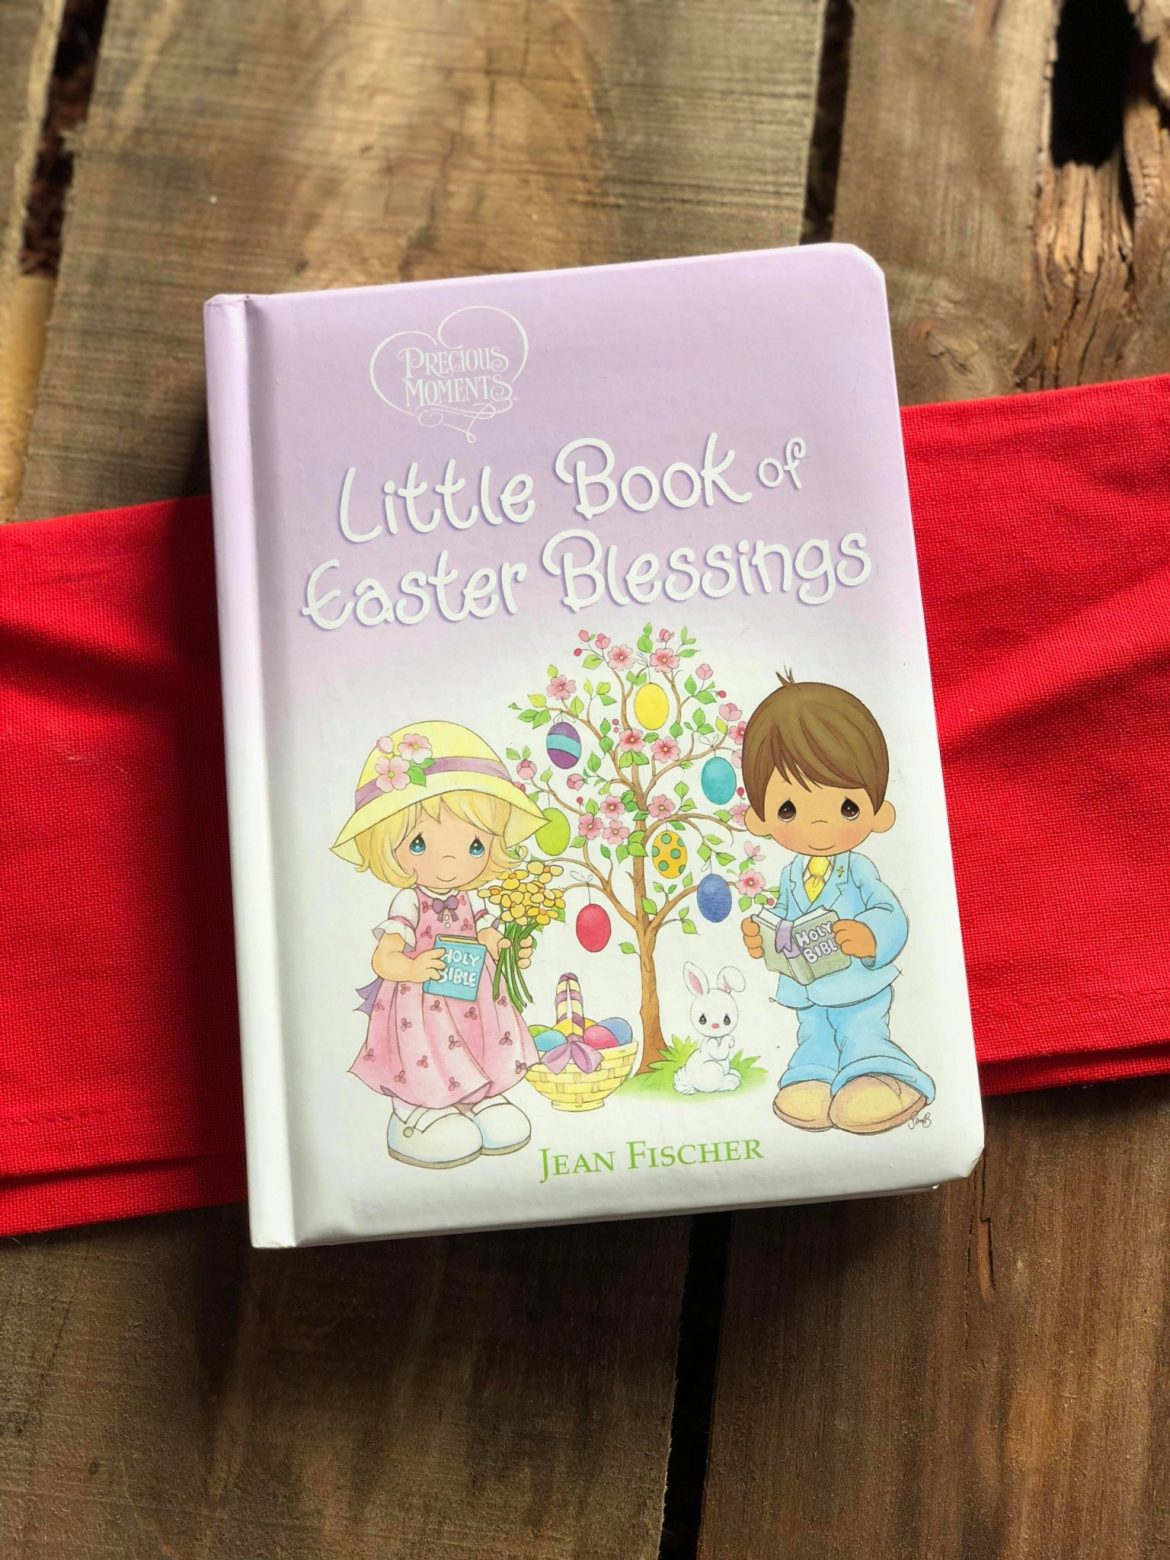 Precious Moments Little Book of Easter Blessings